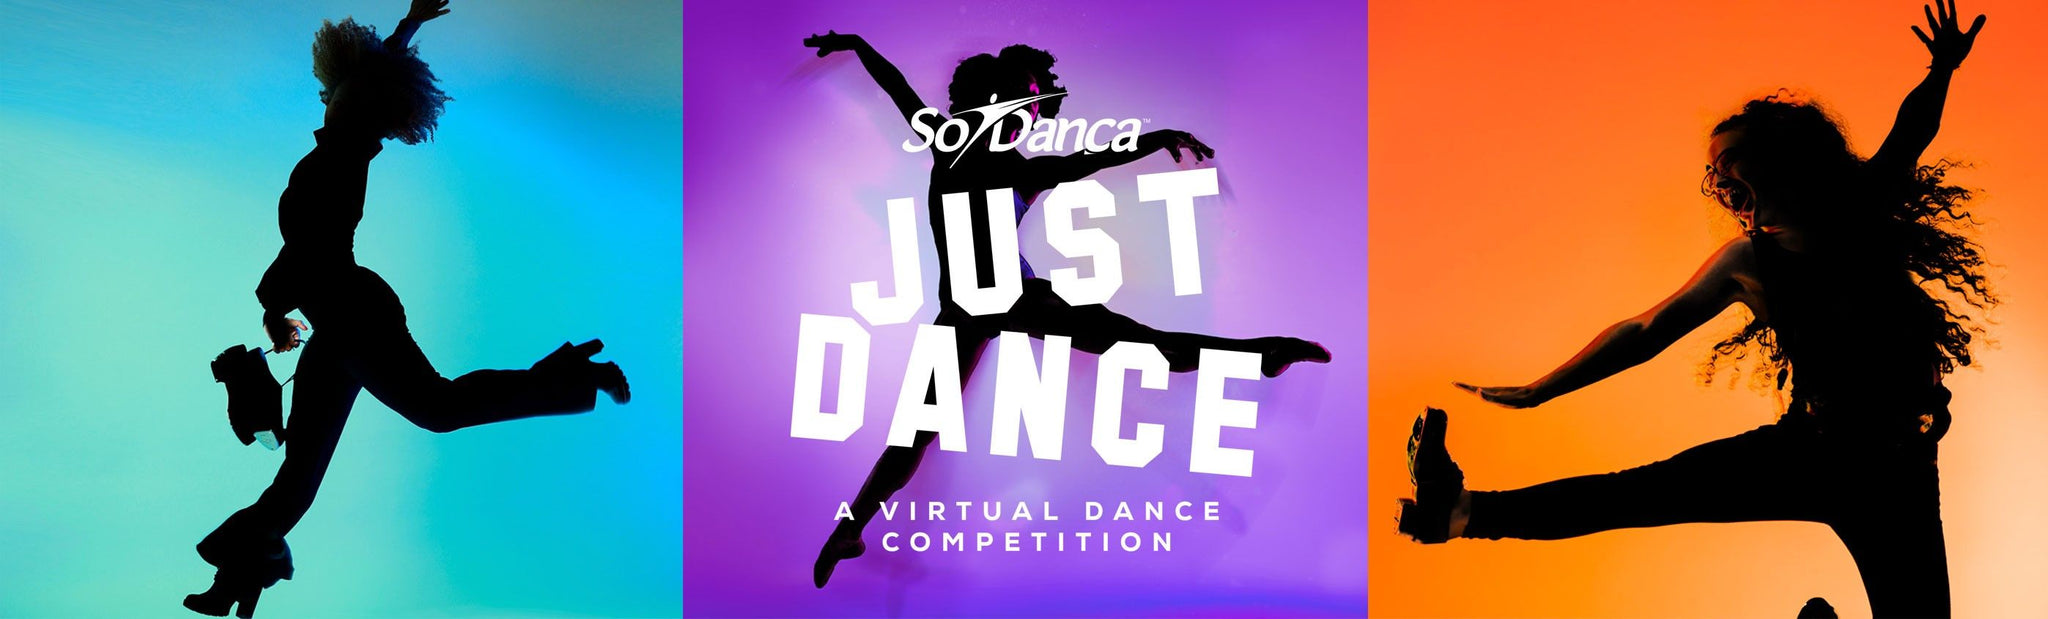 So Danca's Just Dance - A virtual Dance Competition